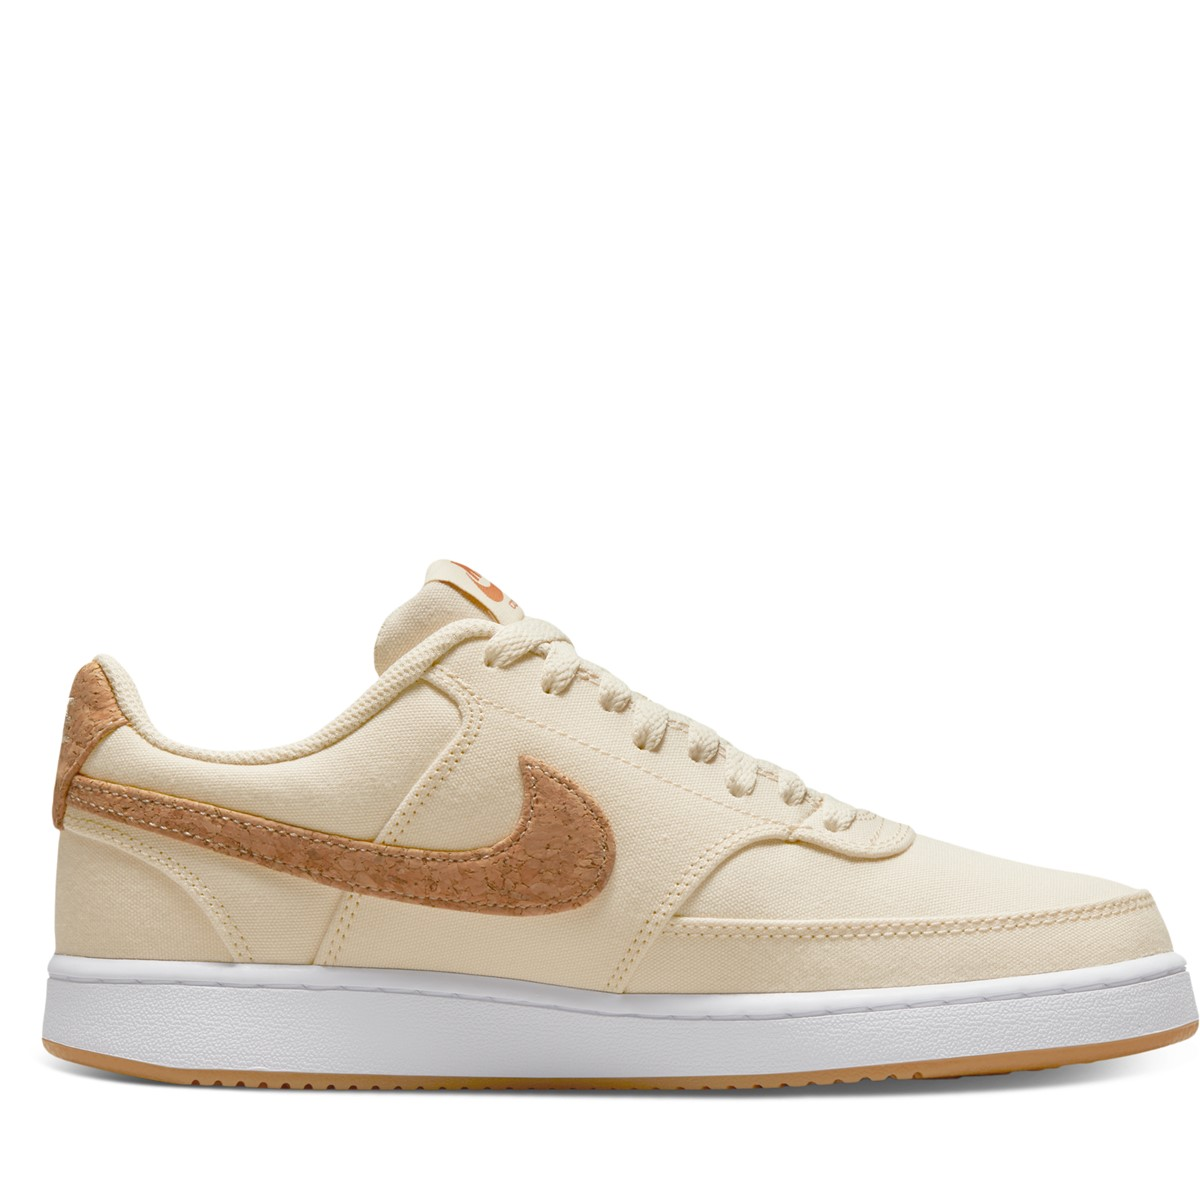 Women's Court Vision Low Sneakers in Beige/White